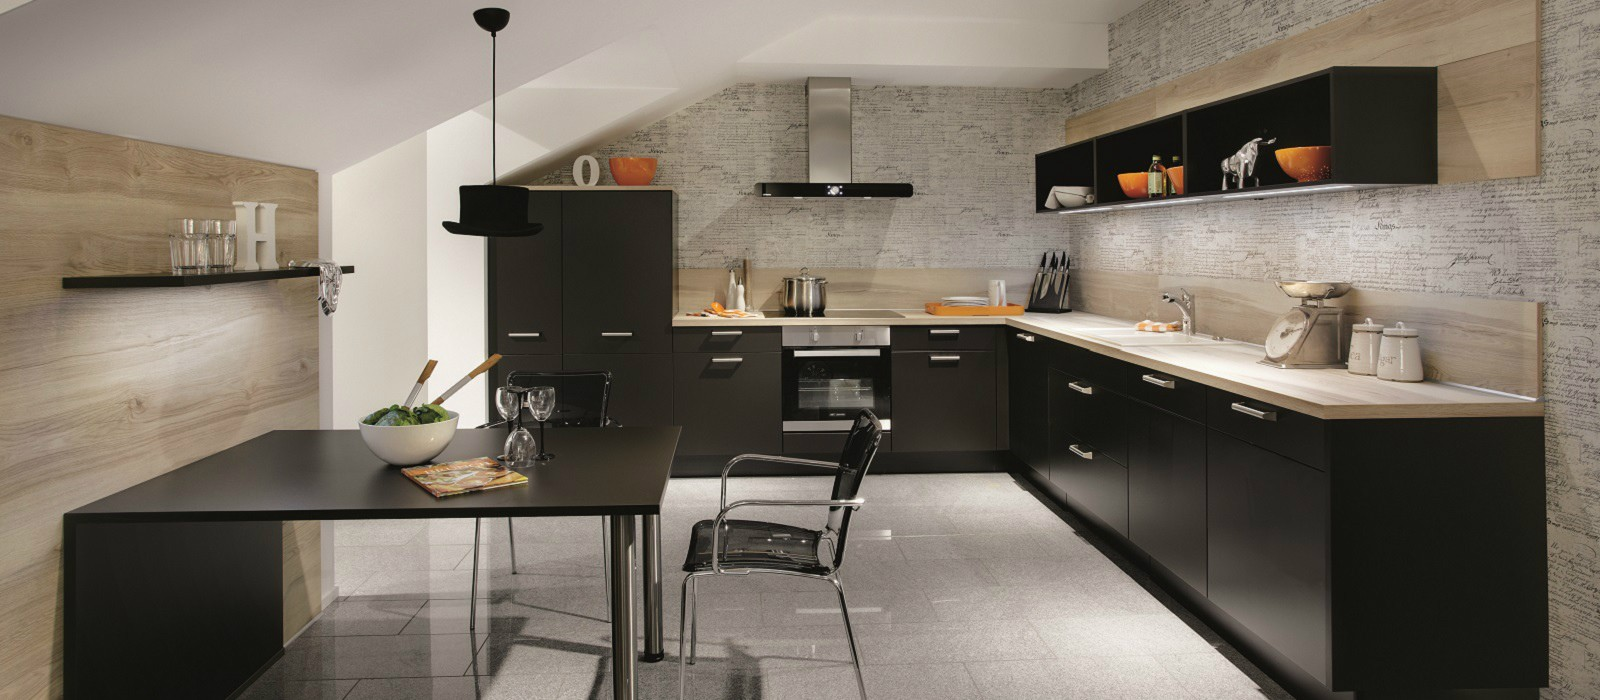 cuisine moderne mobilier cuisine pi ces designd coration cuisine. Black Bedroom Furniture Sets. Home Design Ideas